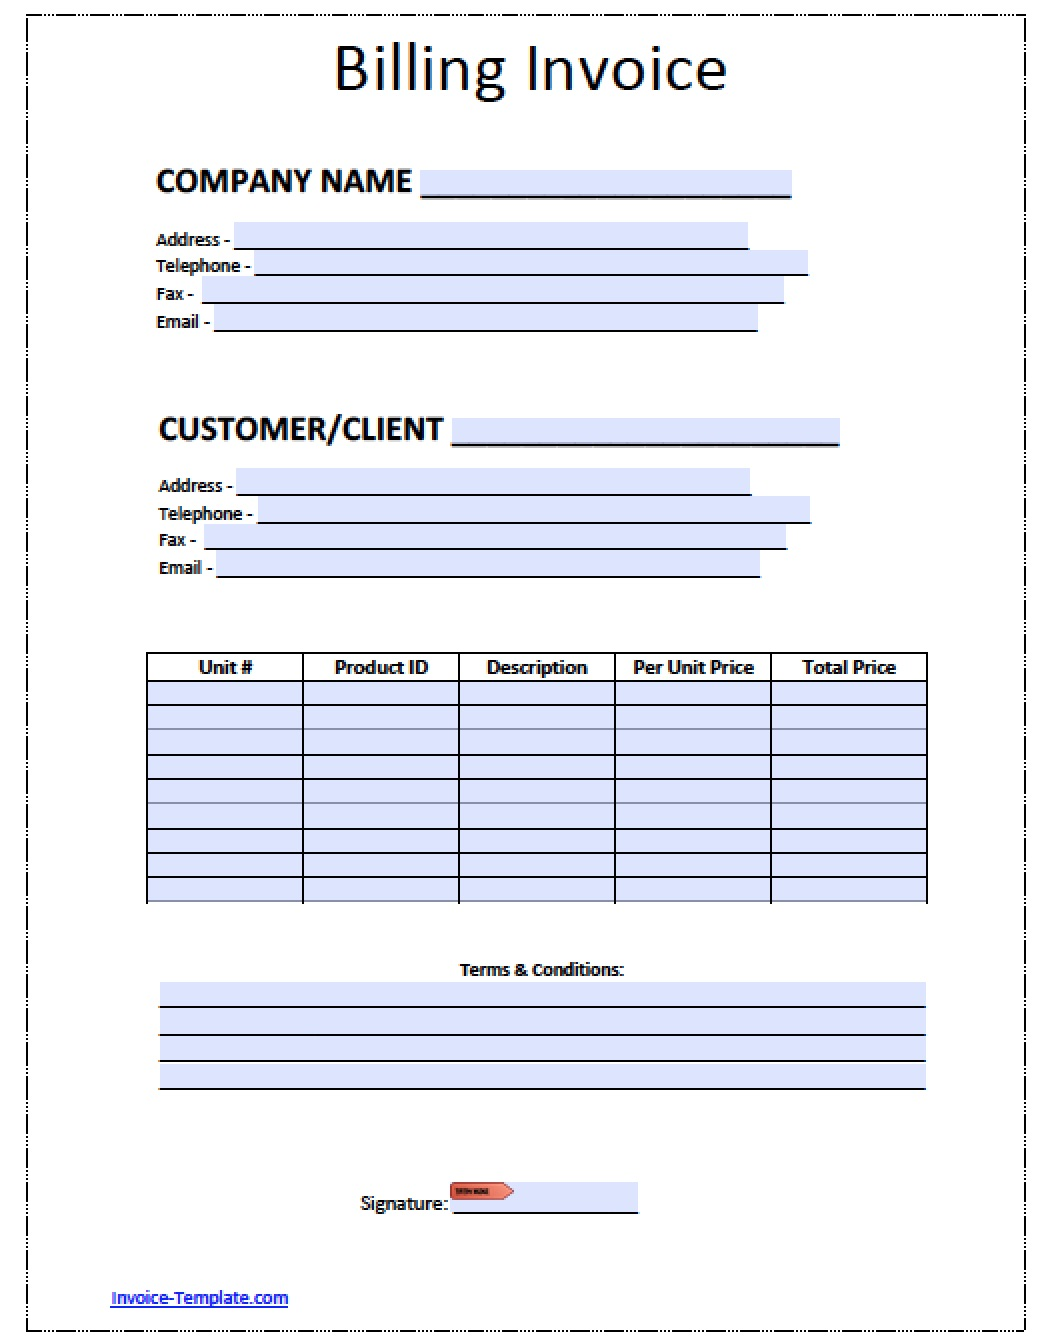 billing invoice template word pdf